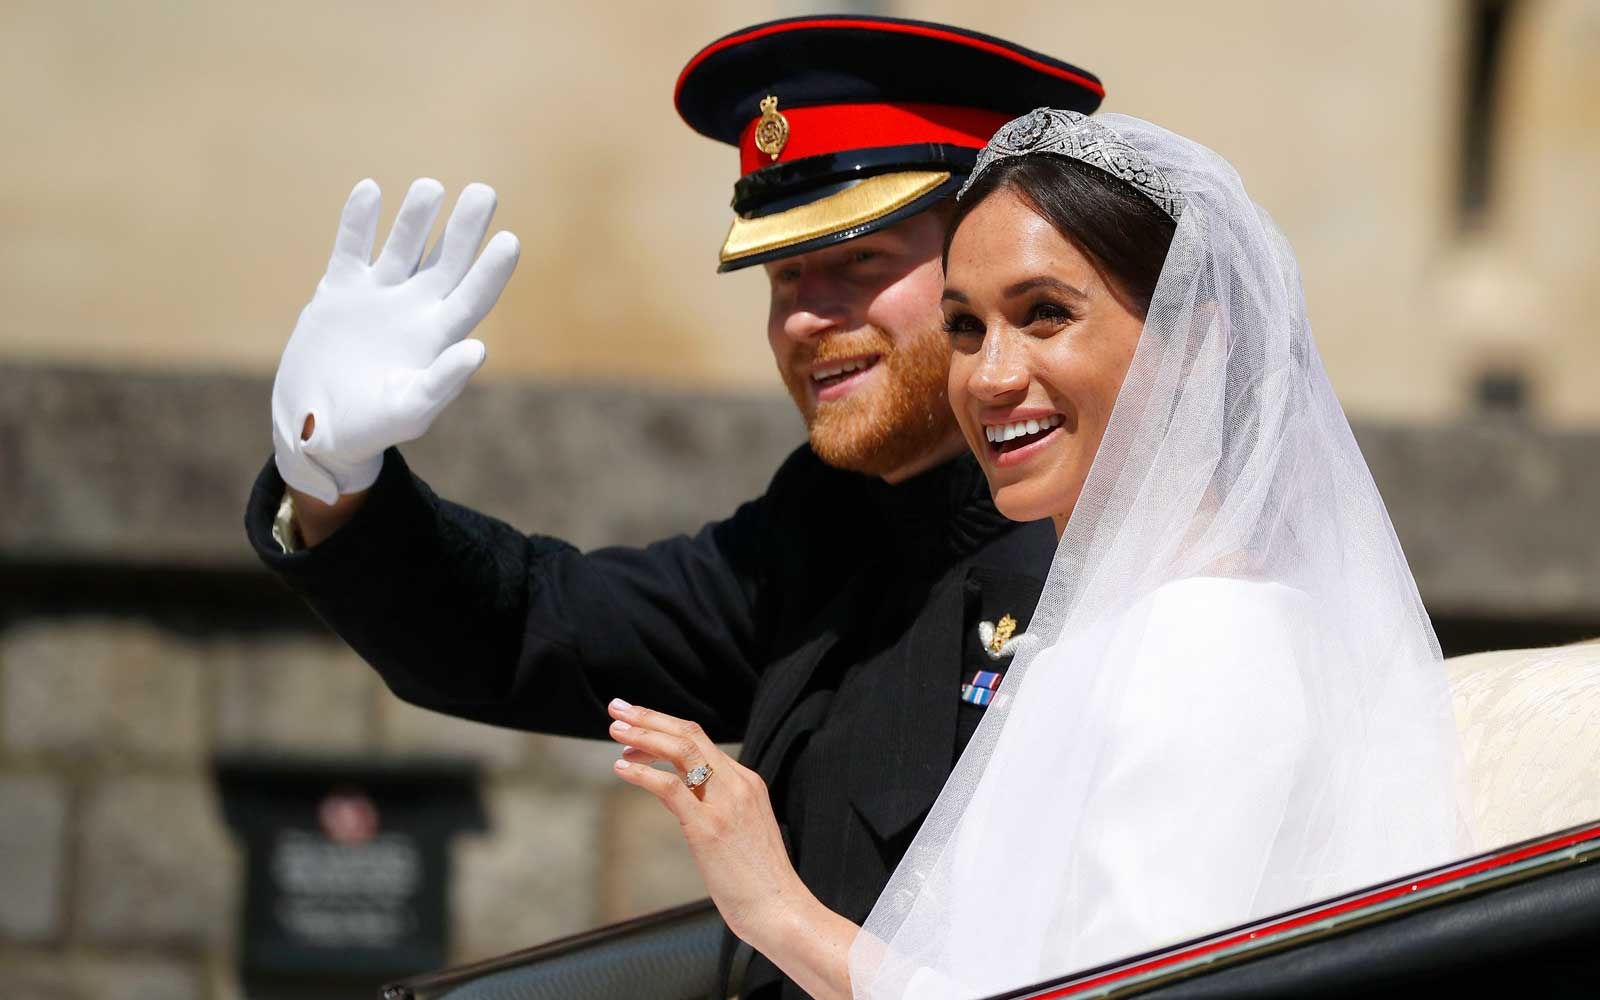 Prince Harry and Duchess Meghan Markle Wedding Day